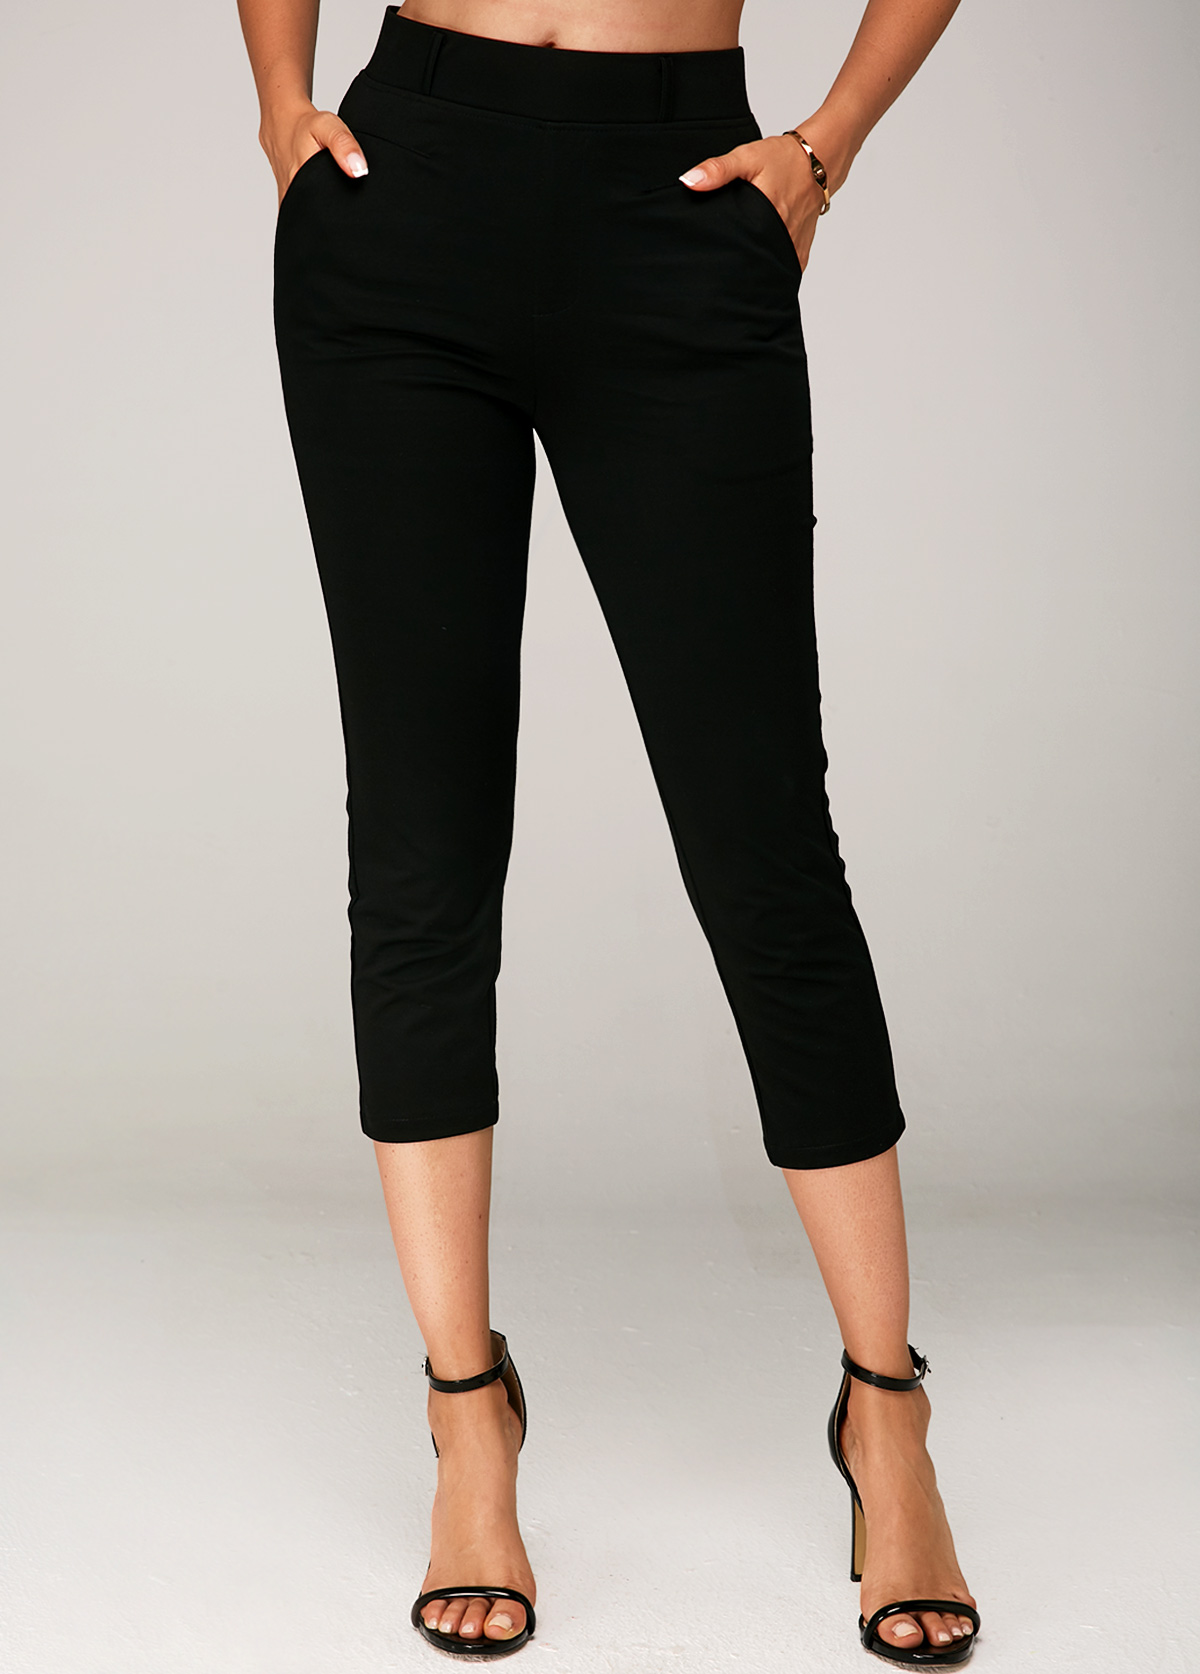 ROTITA Side Pocket Elastic Waist Black Crop Pants